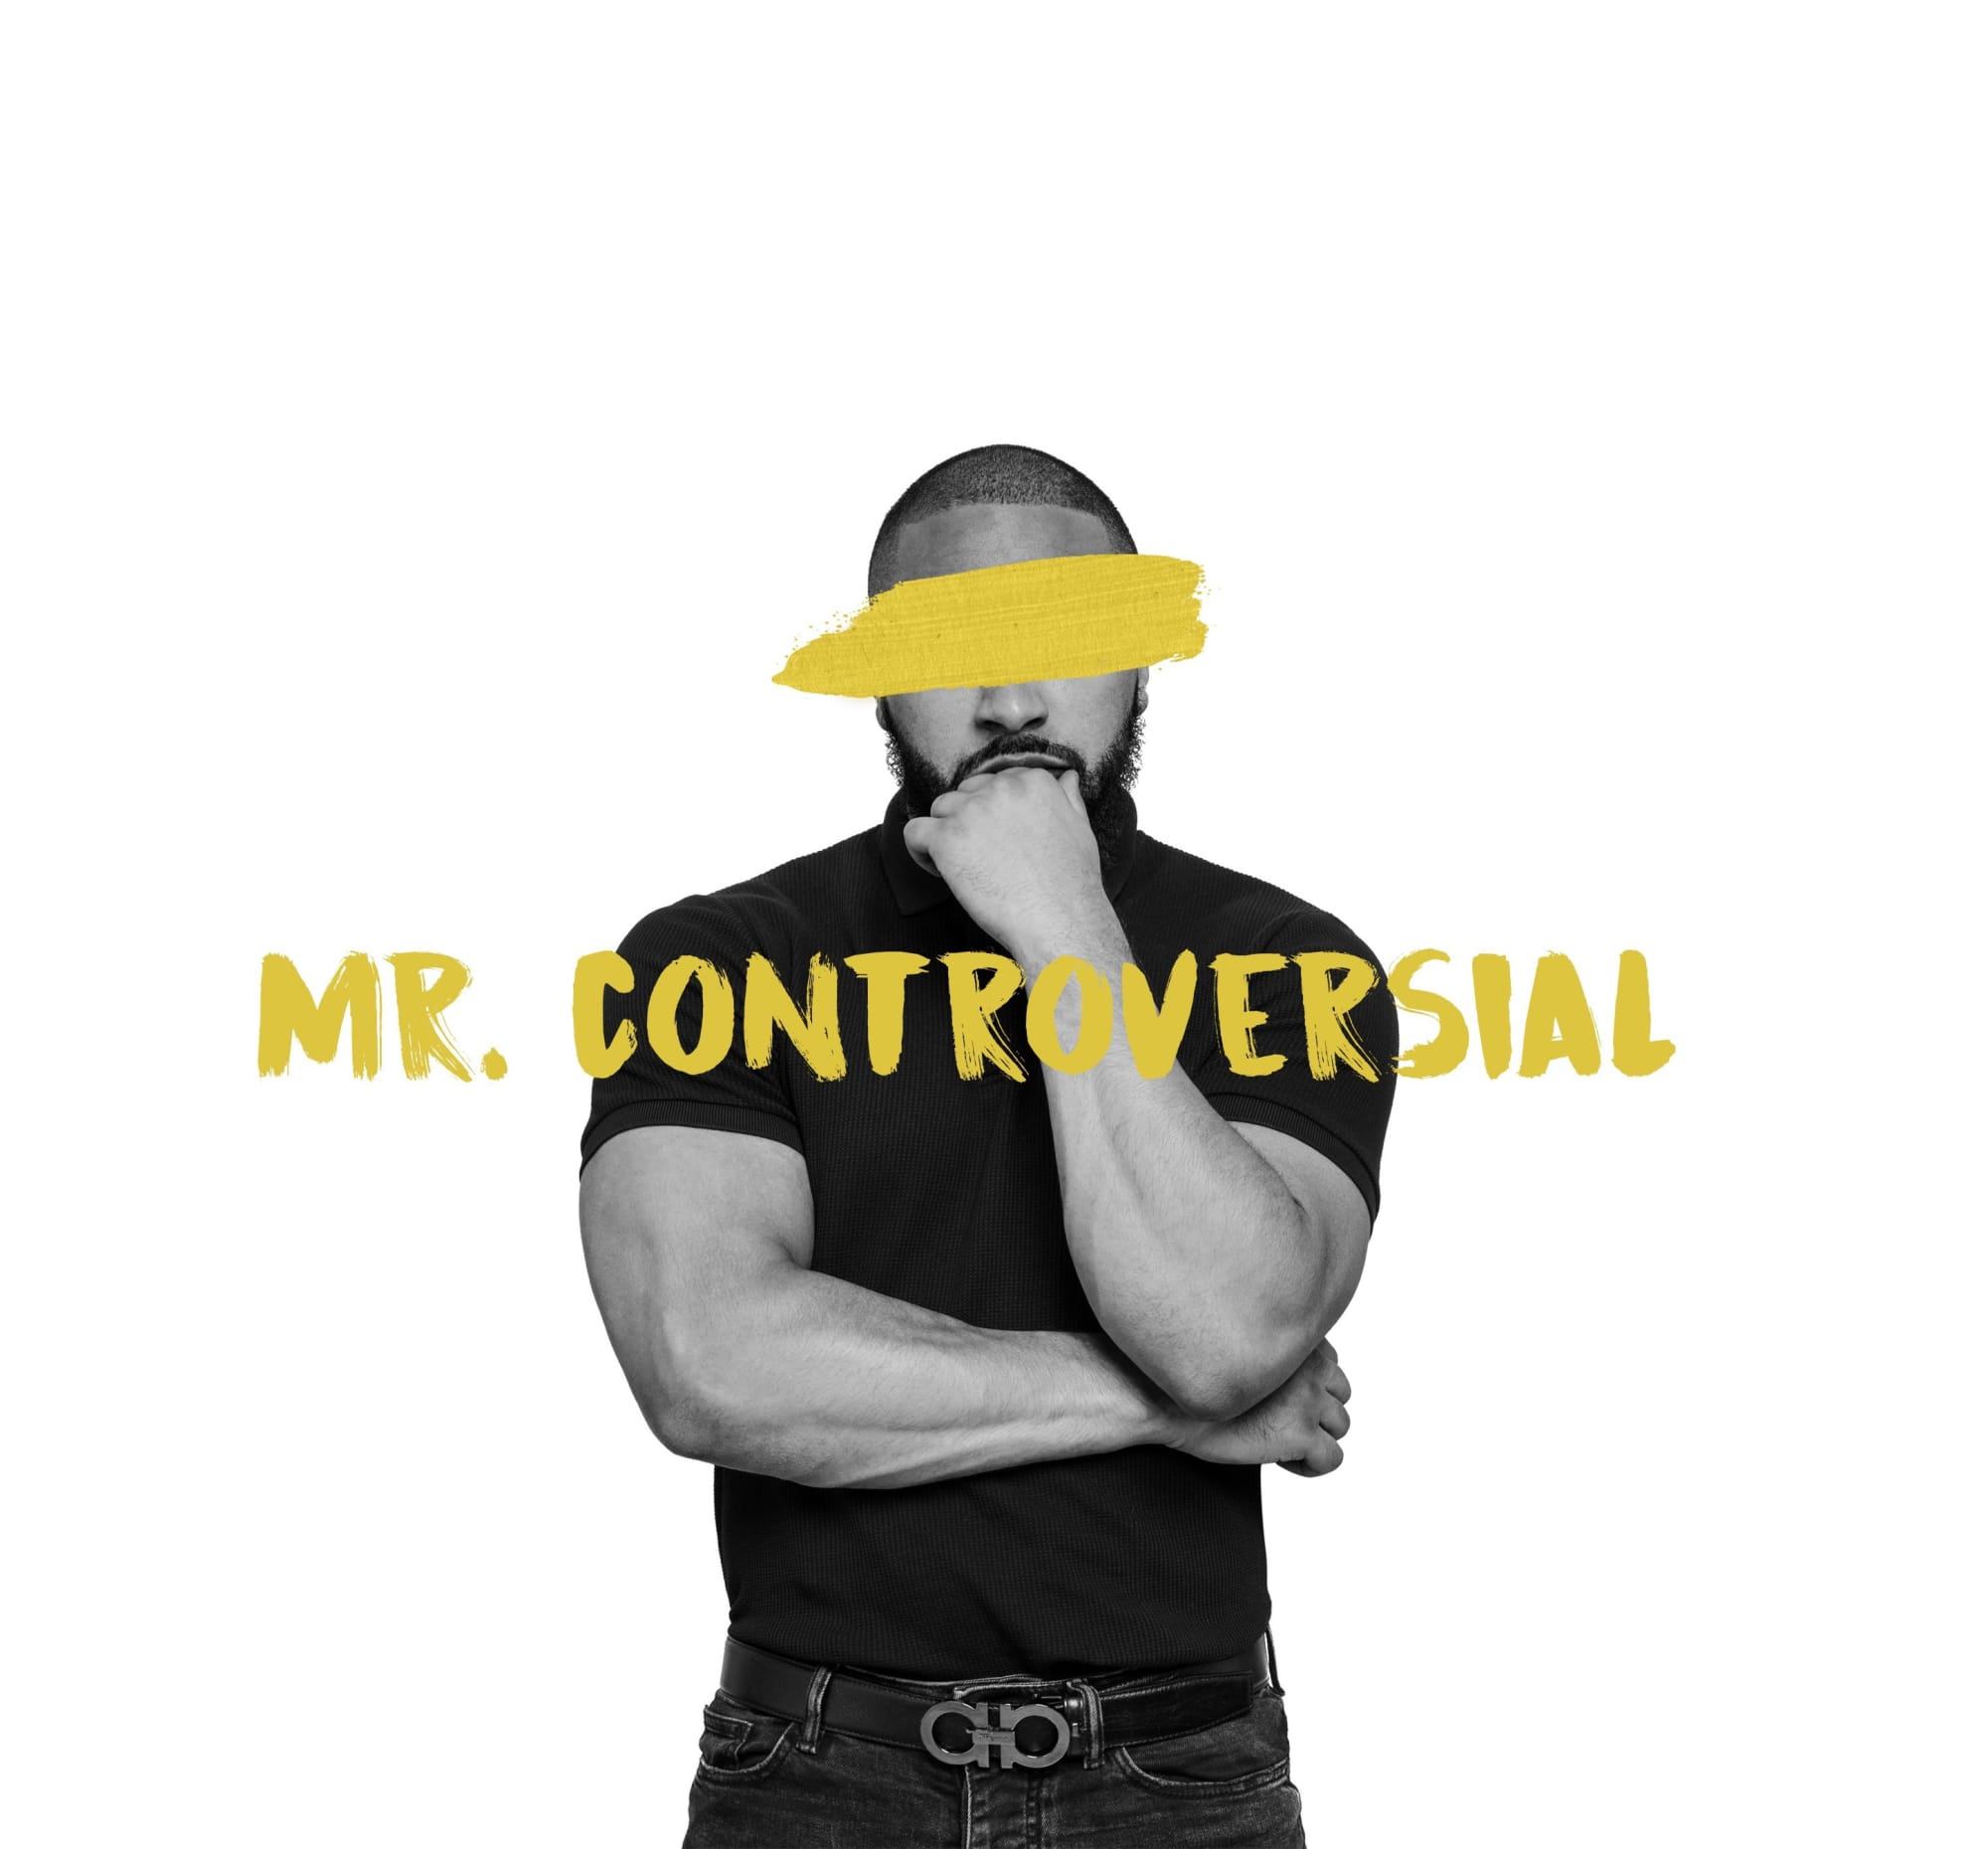 INTRODUCING: Mr Controversial